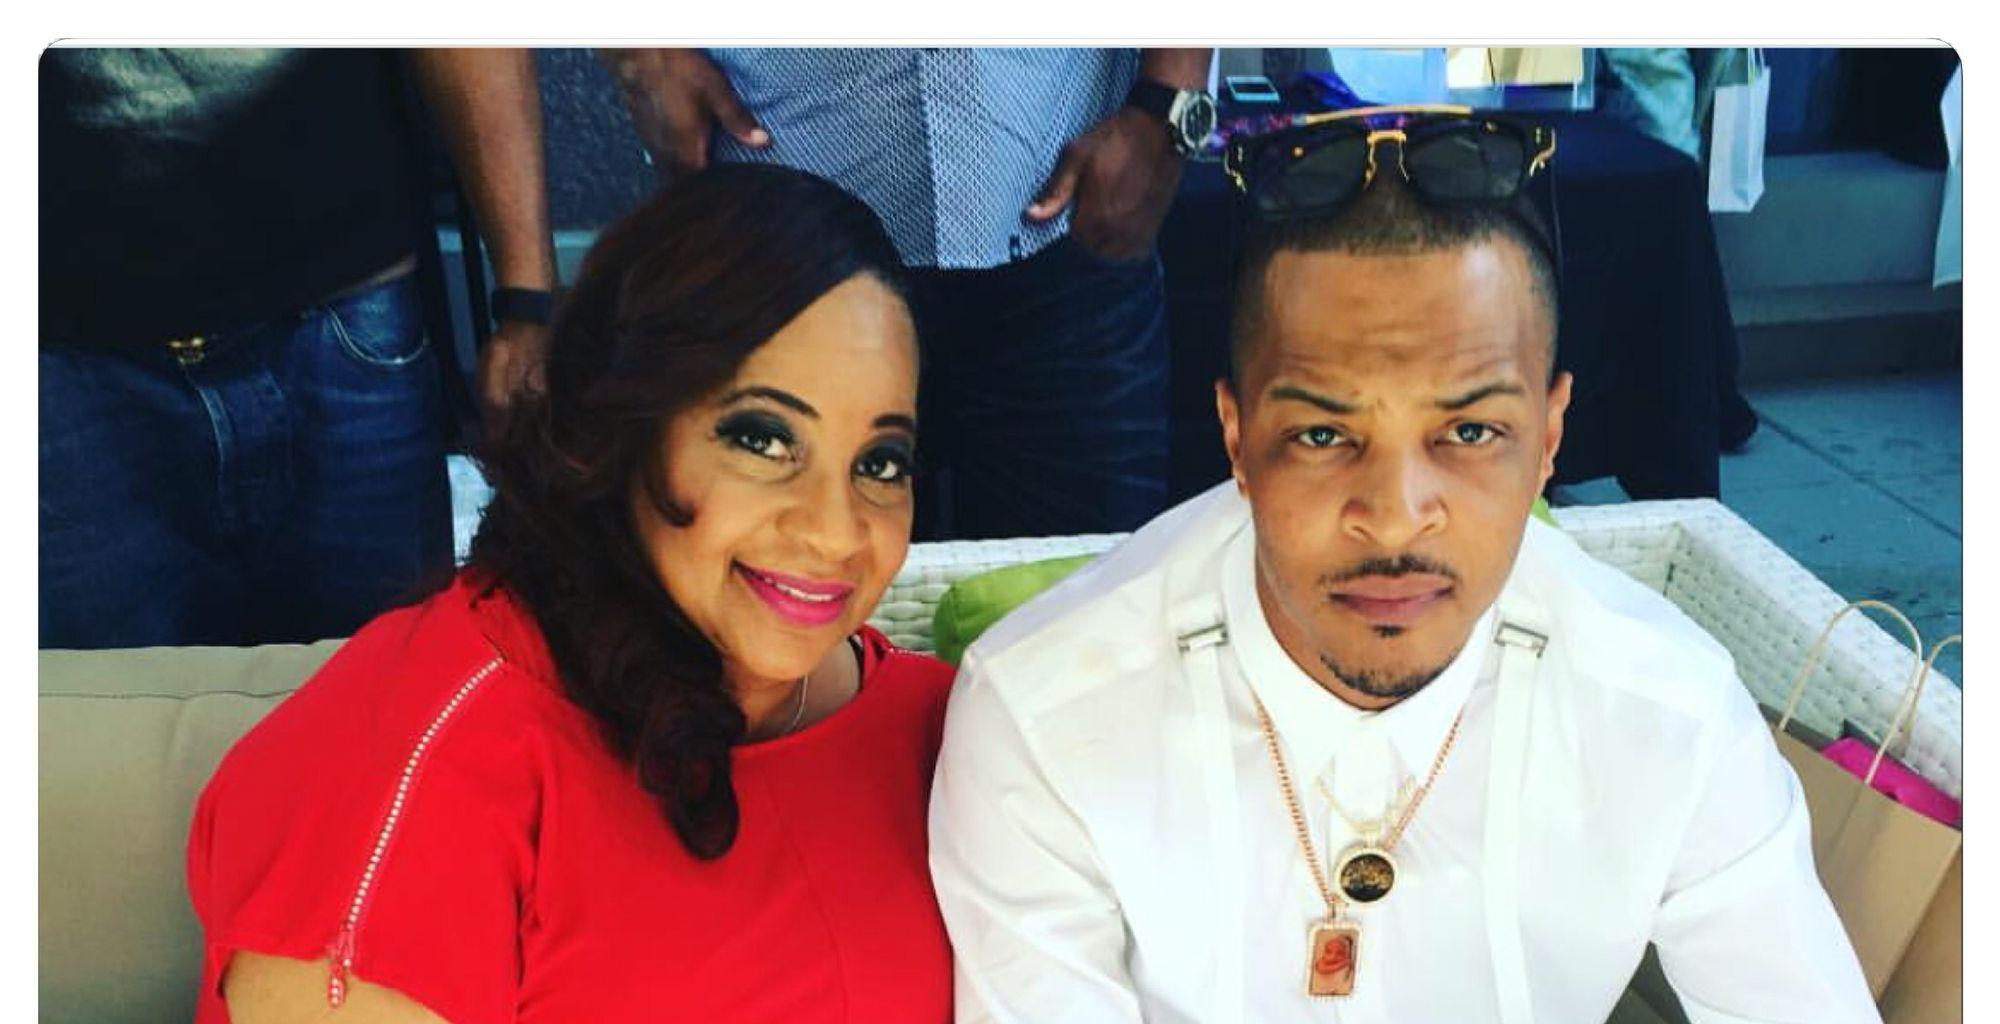 T.I. Shares A Photo Featuring Himself And His Mom, Violeta, Whom He Calls His 'Oldest Daughter'